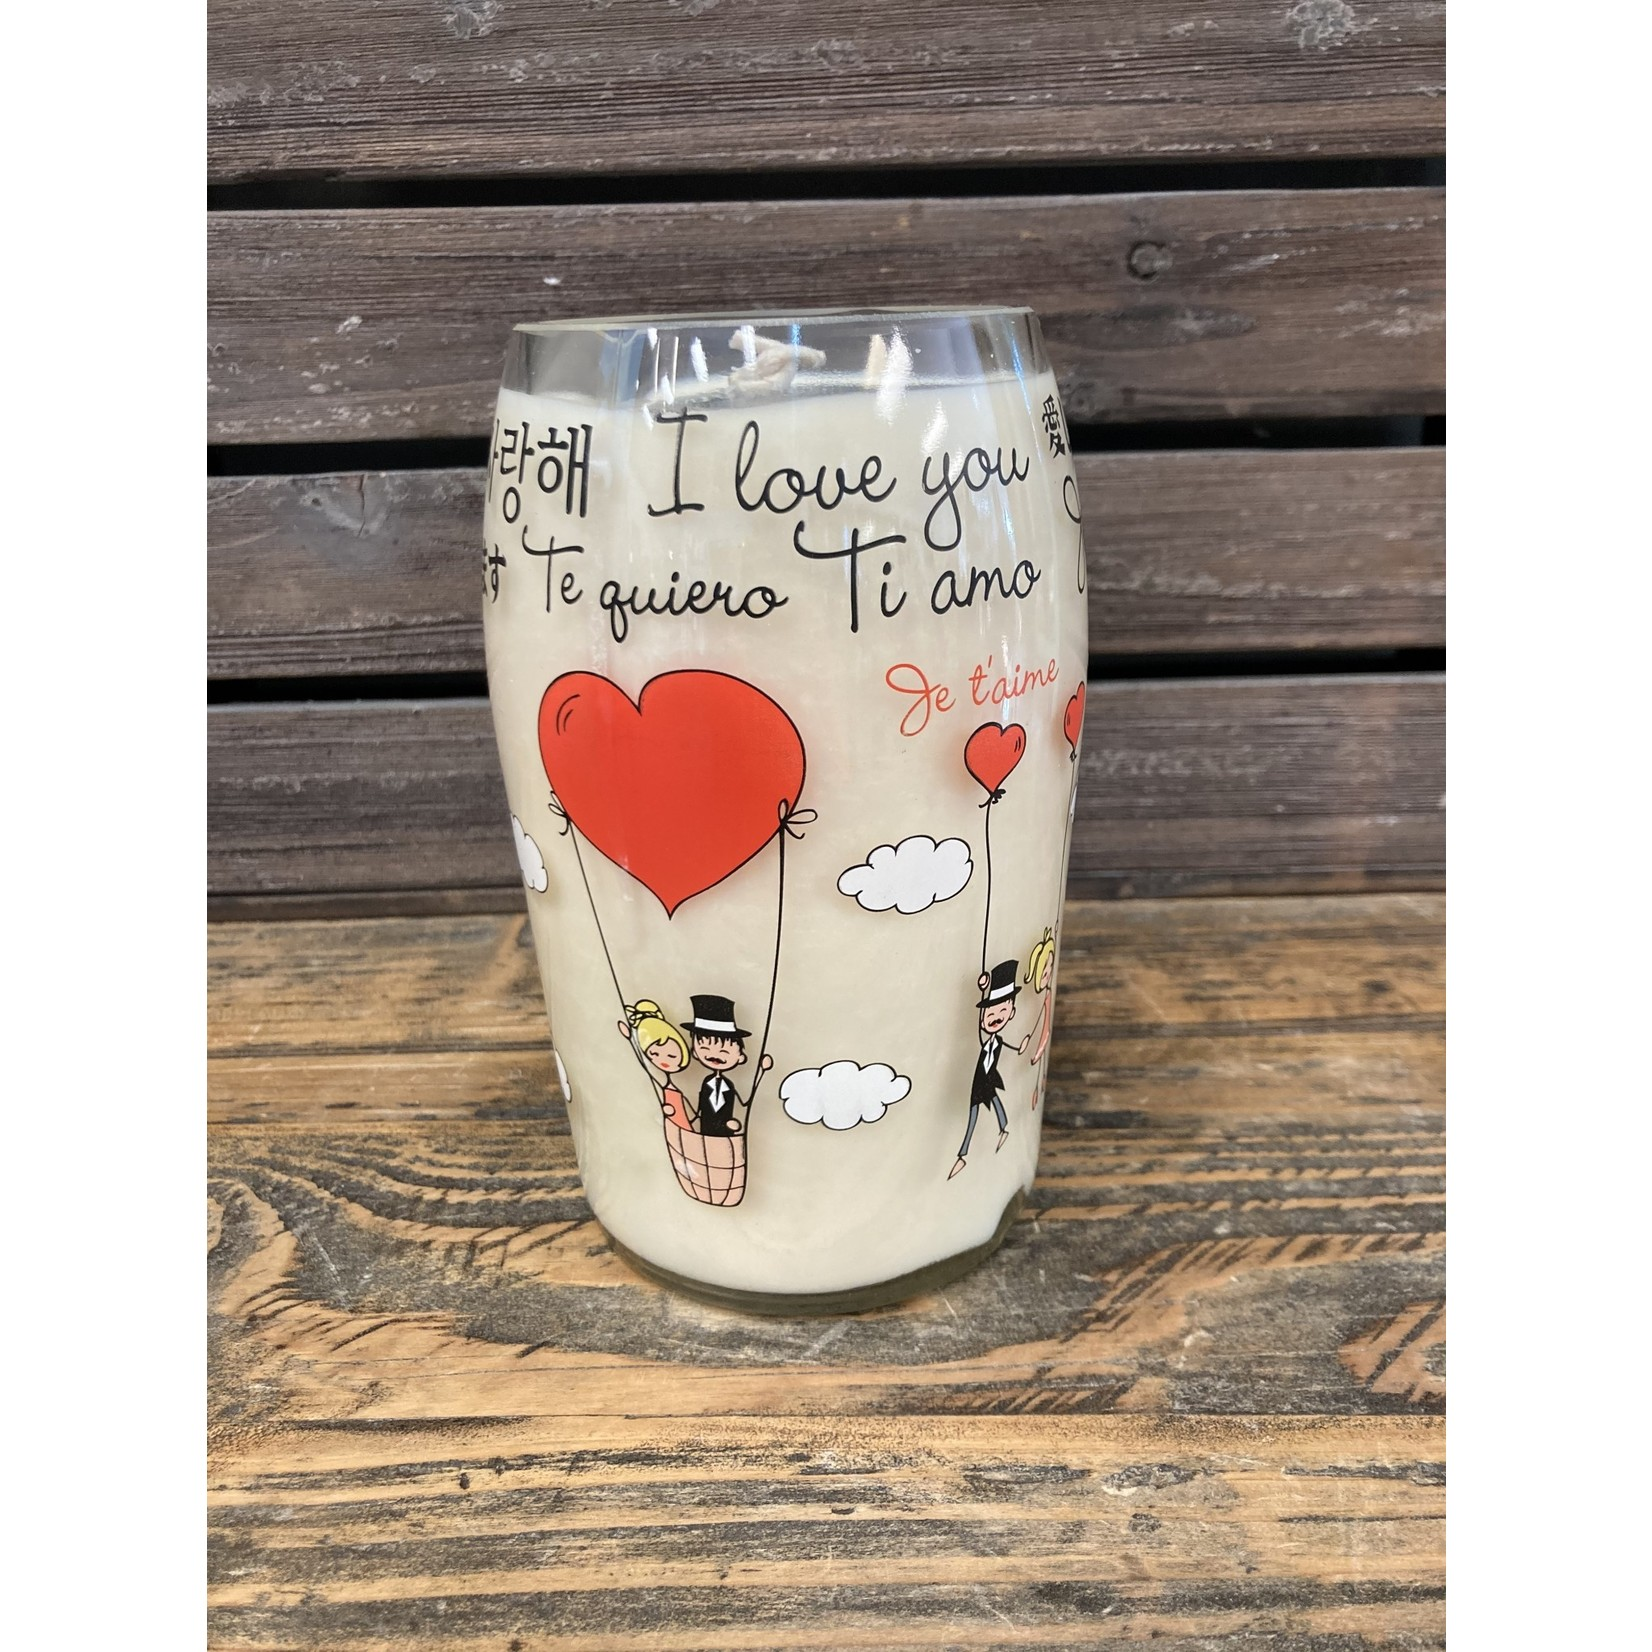 Susan Cowher Candles Uncorked   I love you ❤️ Cabernet